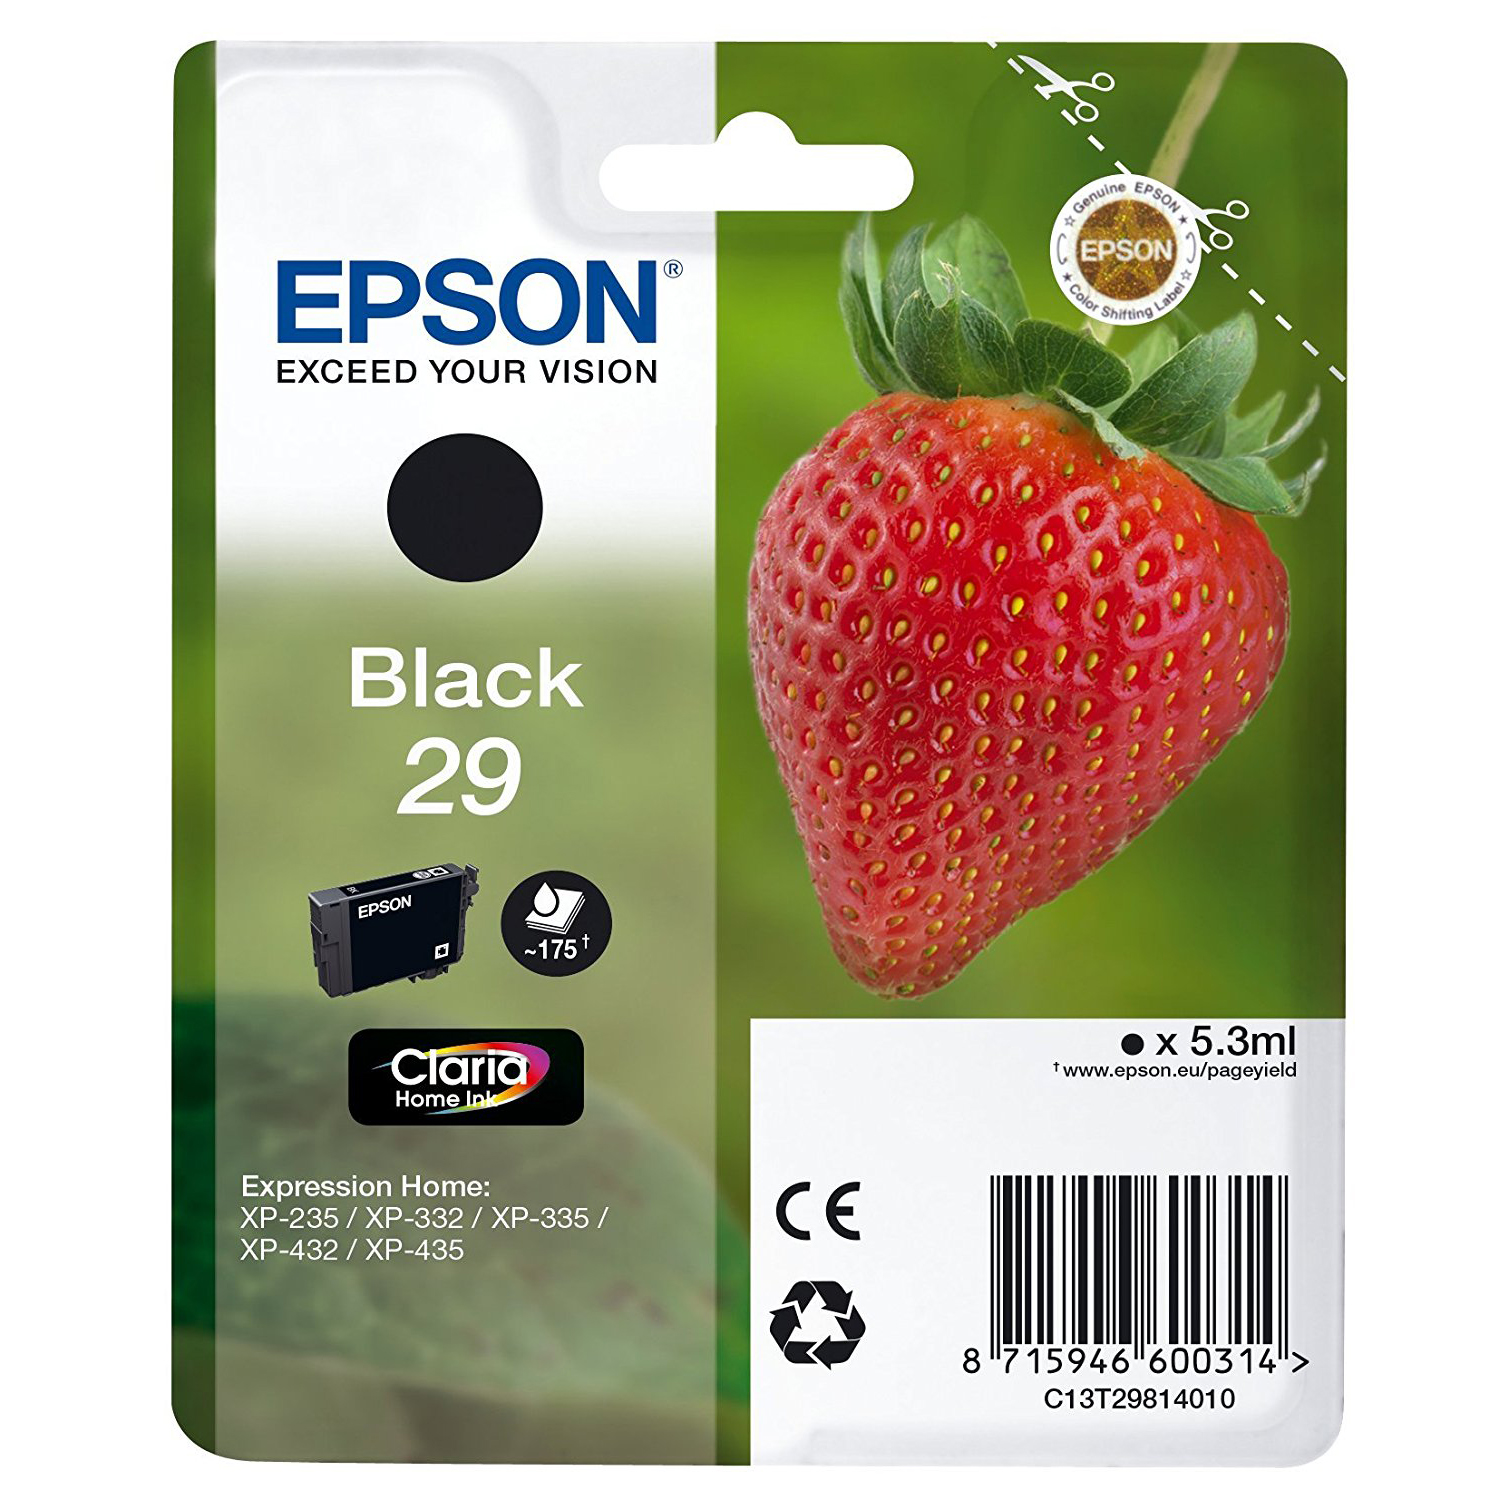 EPSON Strawberry T2981 Black Ink Cartridge